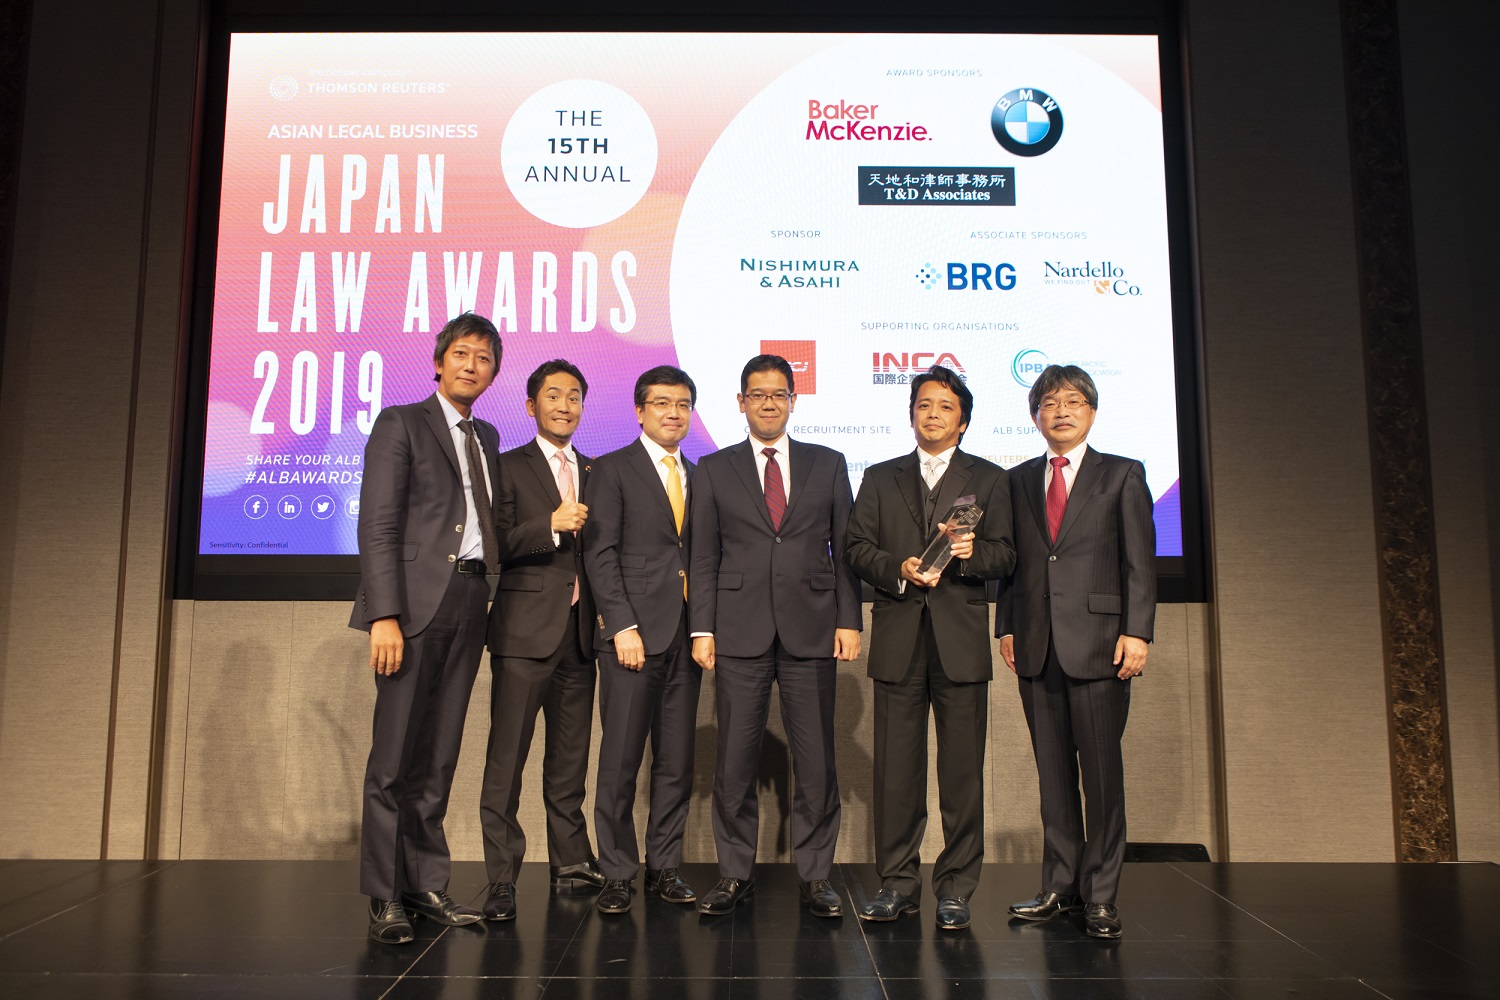 ALB Japan Law Awards 2019 | Asian Legal Business